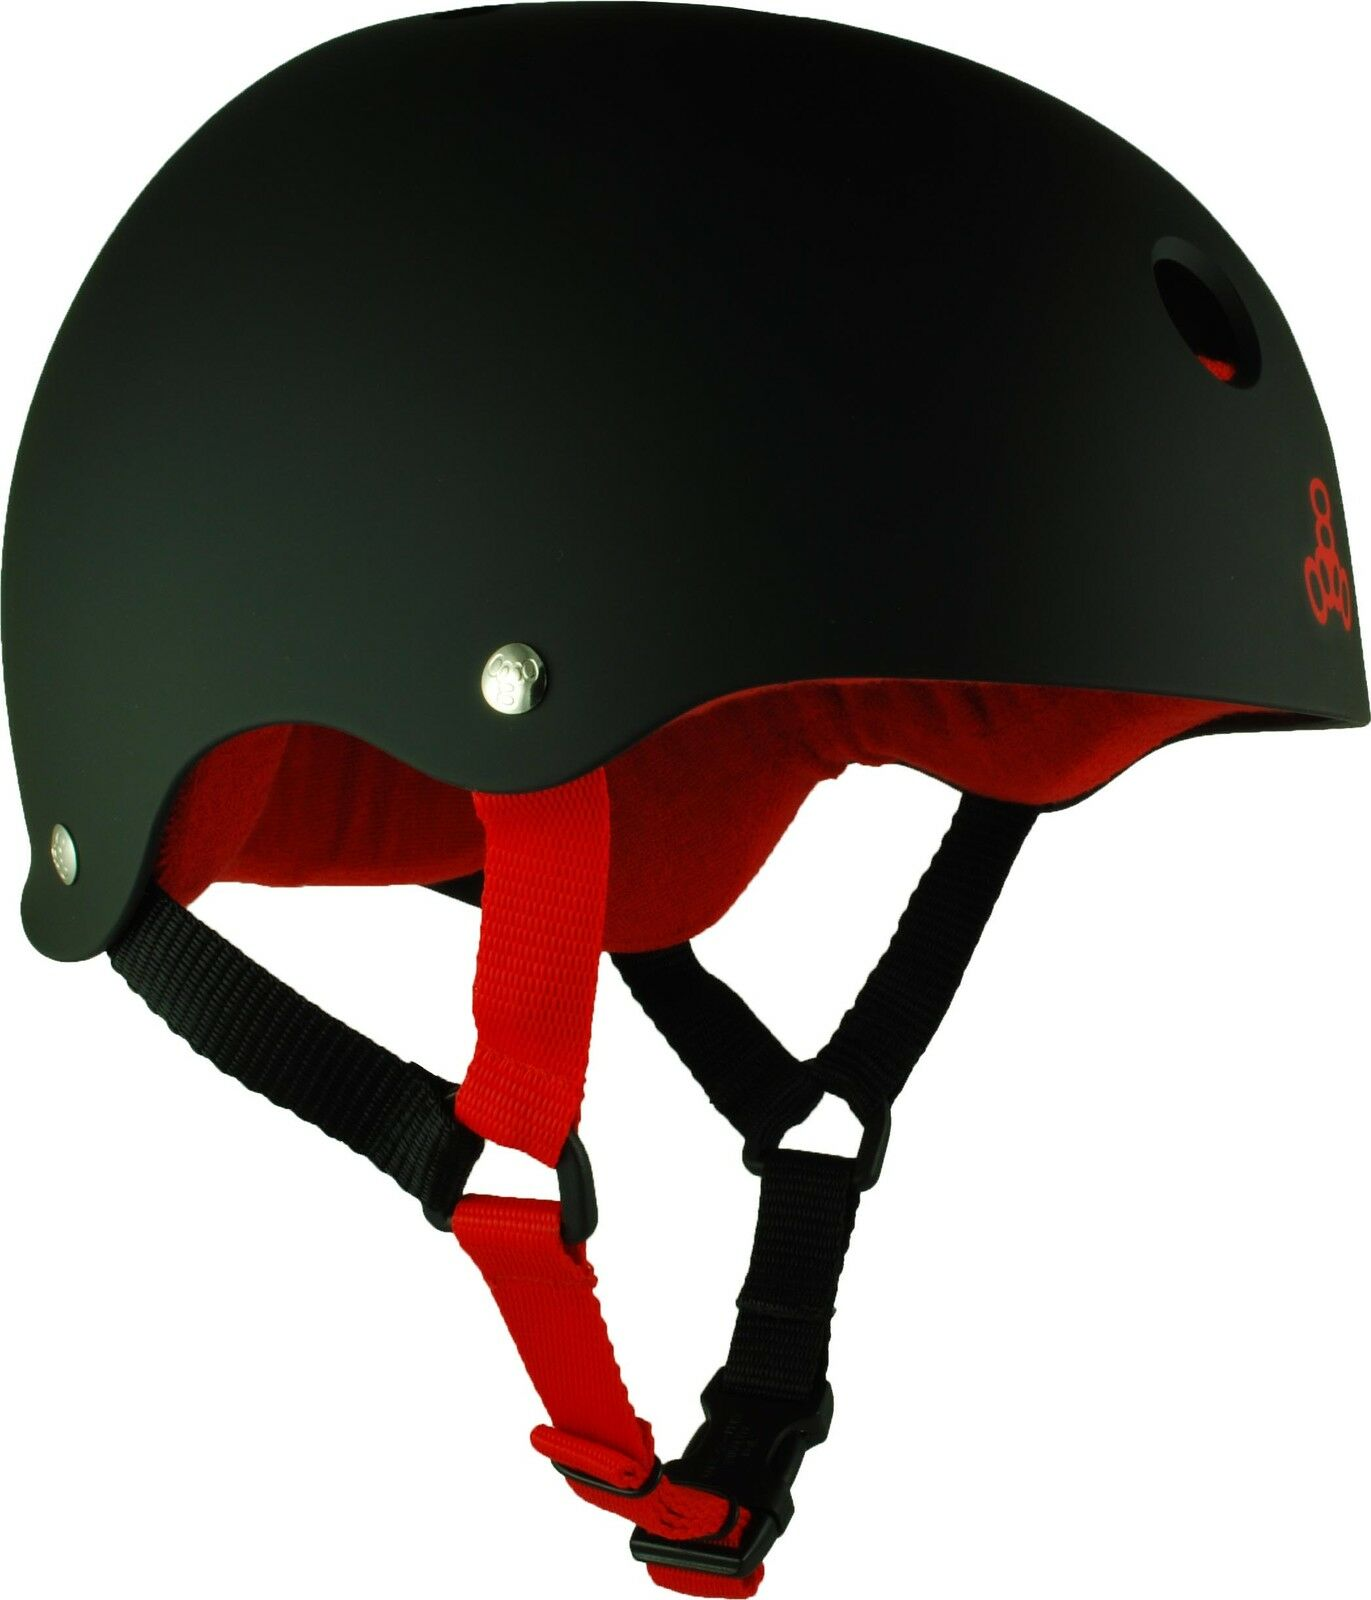 Triple 8  Rubber Helmet w  Sweatsaver Liner  cheap and top quality